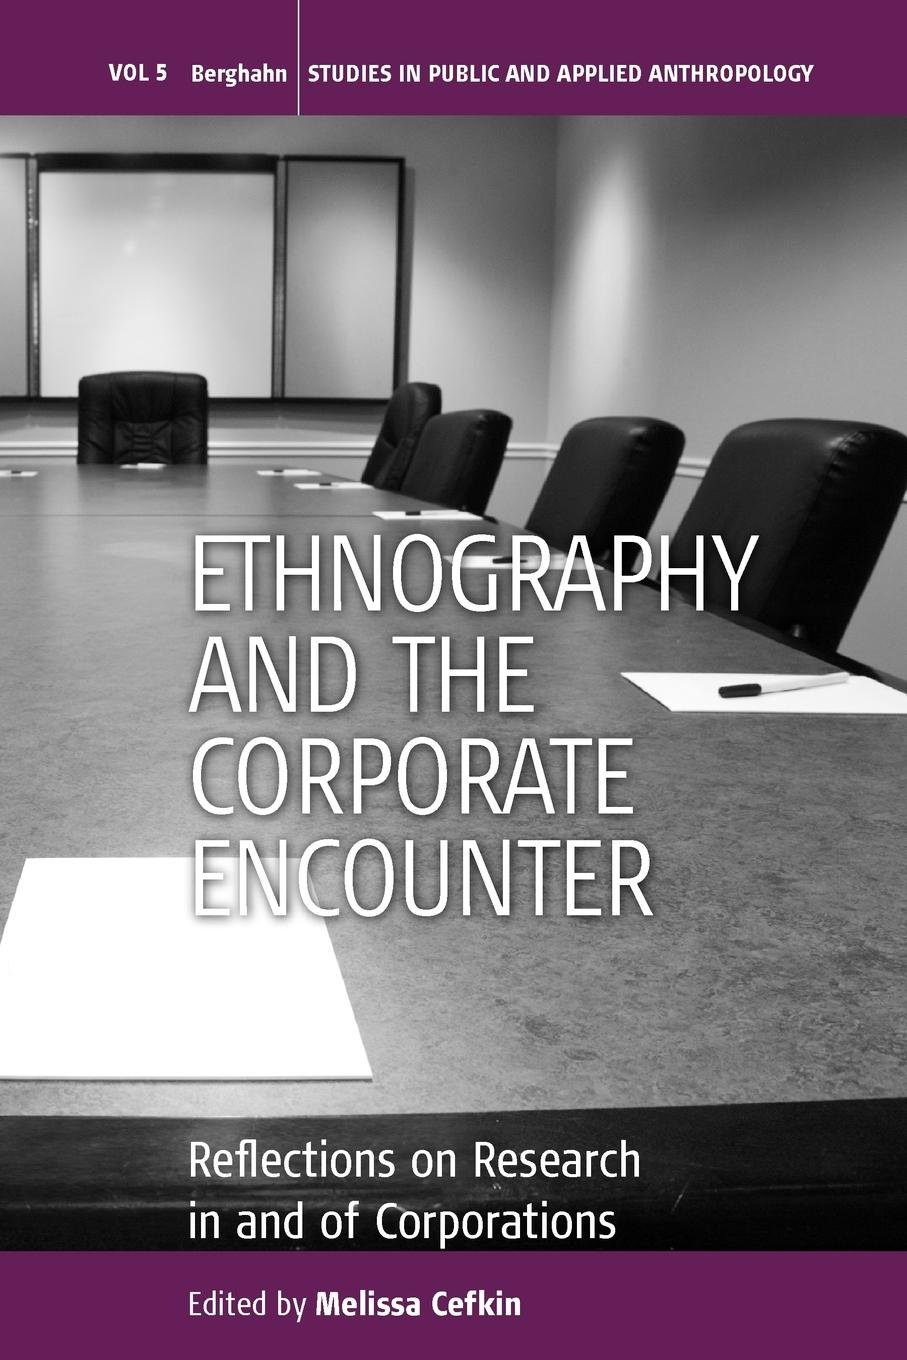 Ethnography and the Corporate Encounter: Reflections on Research in and of Corporations (Studies in Public and Applied Anthropology)